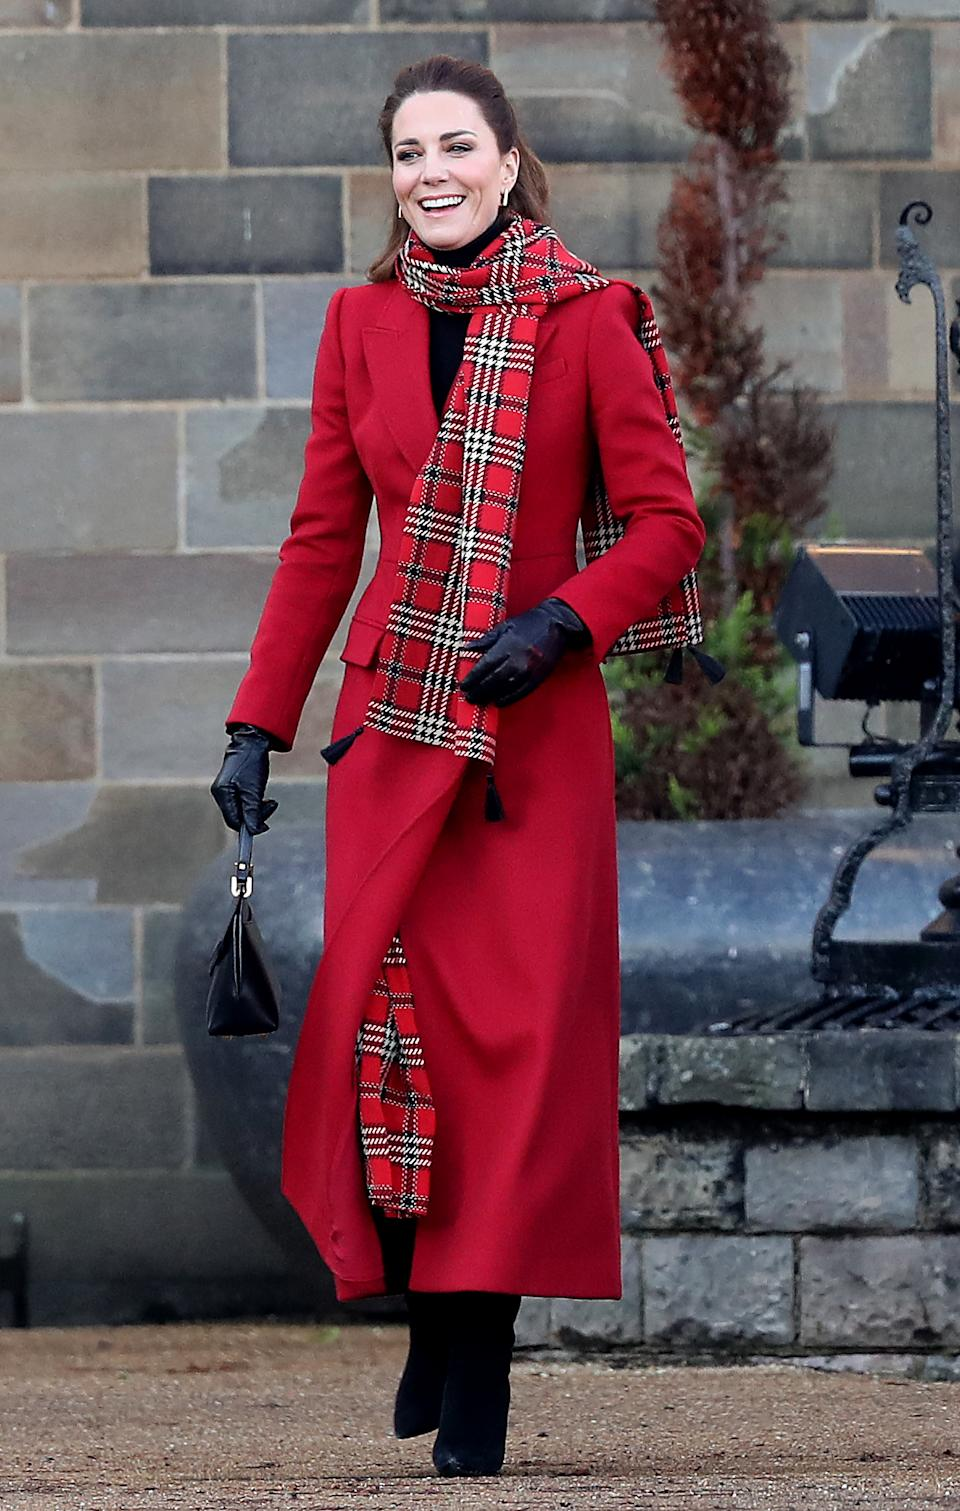 Catherine, Duchess of Cambridge wears a red coat and red plaid scarf on a visit to Cardiff Castle on December 08, 2020 in Cardiff, Wales.